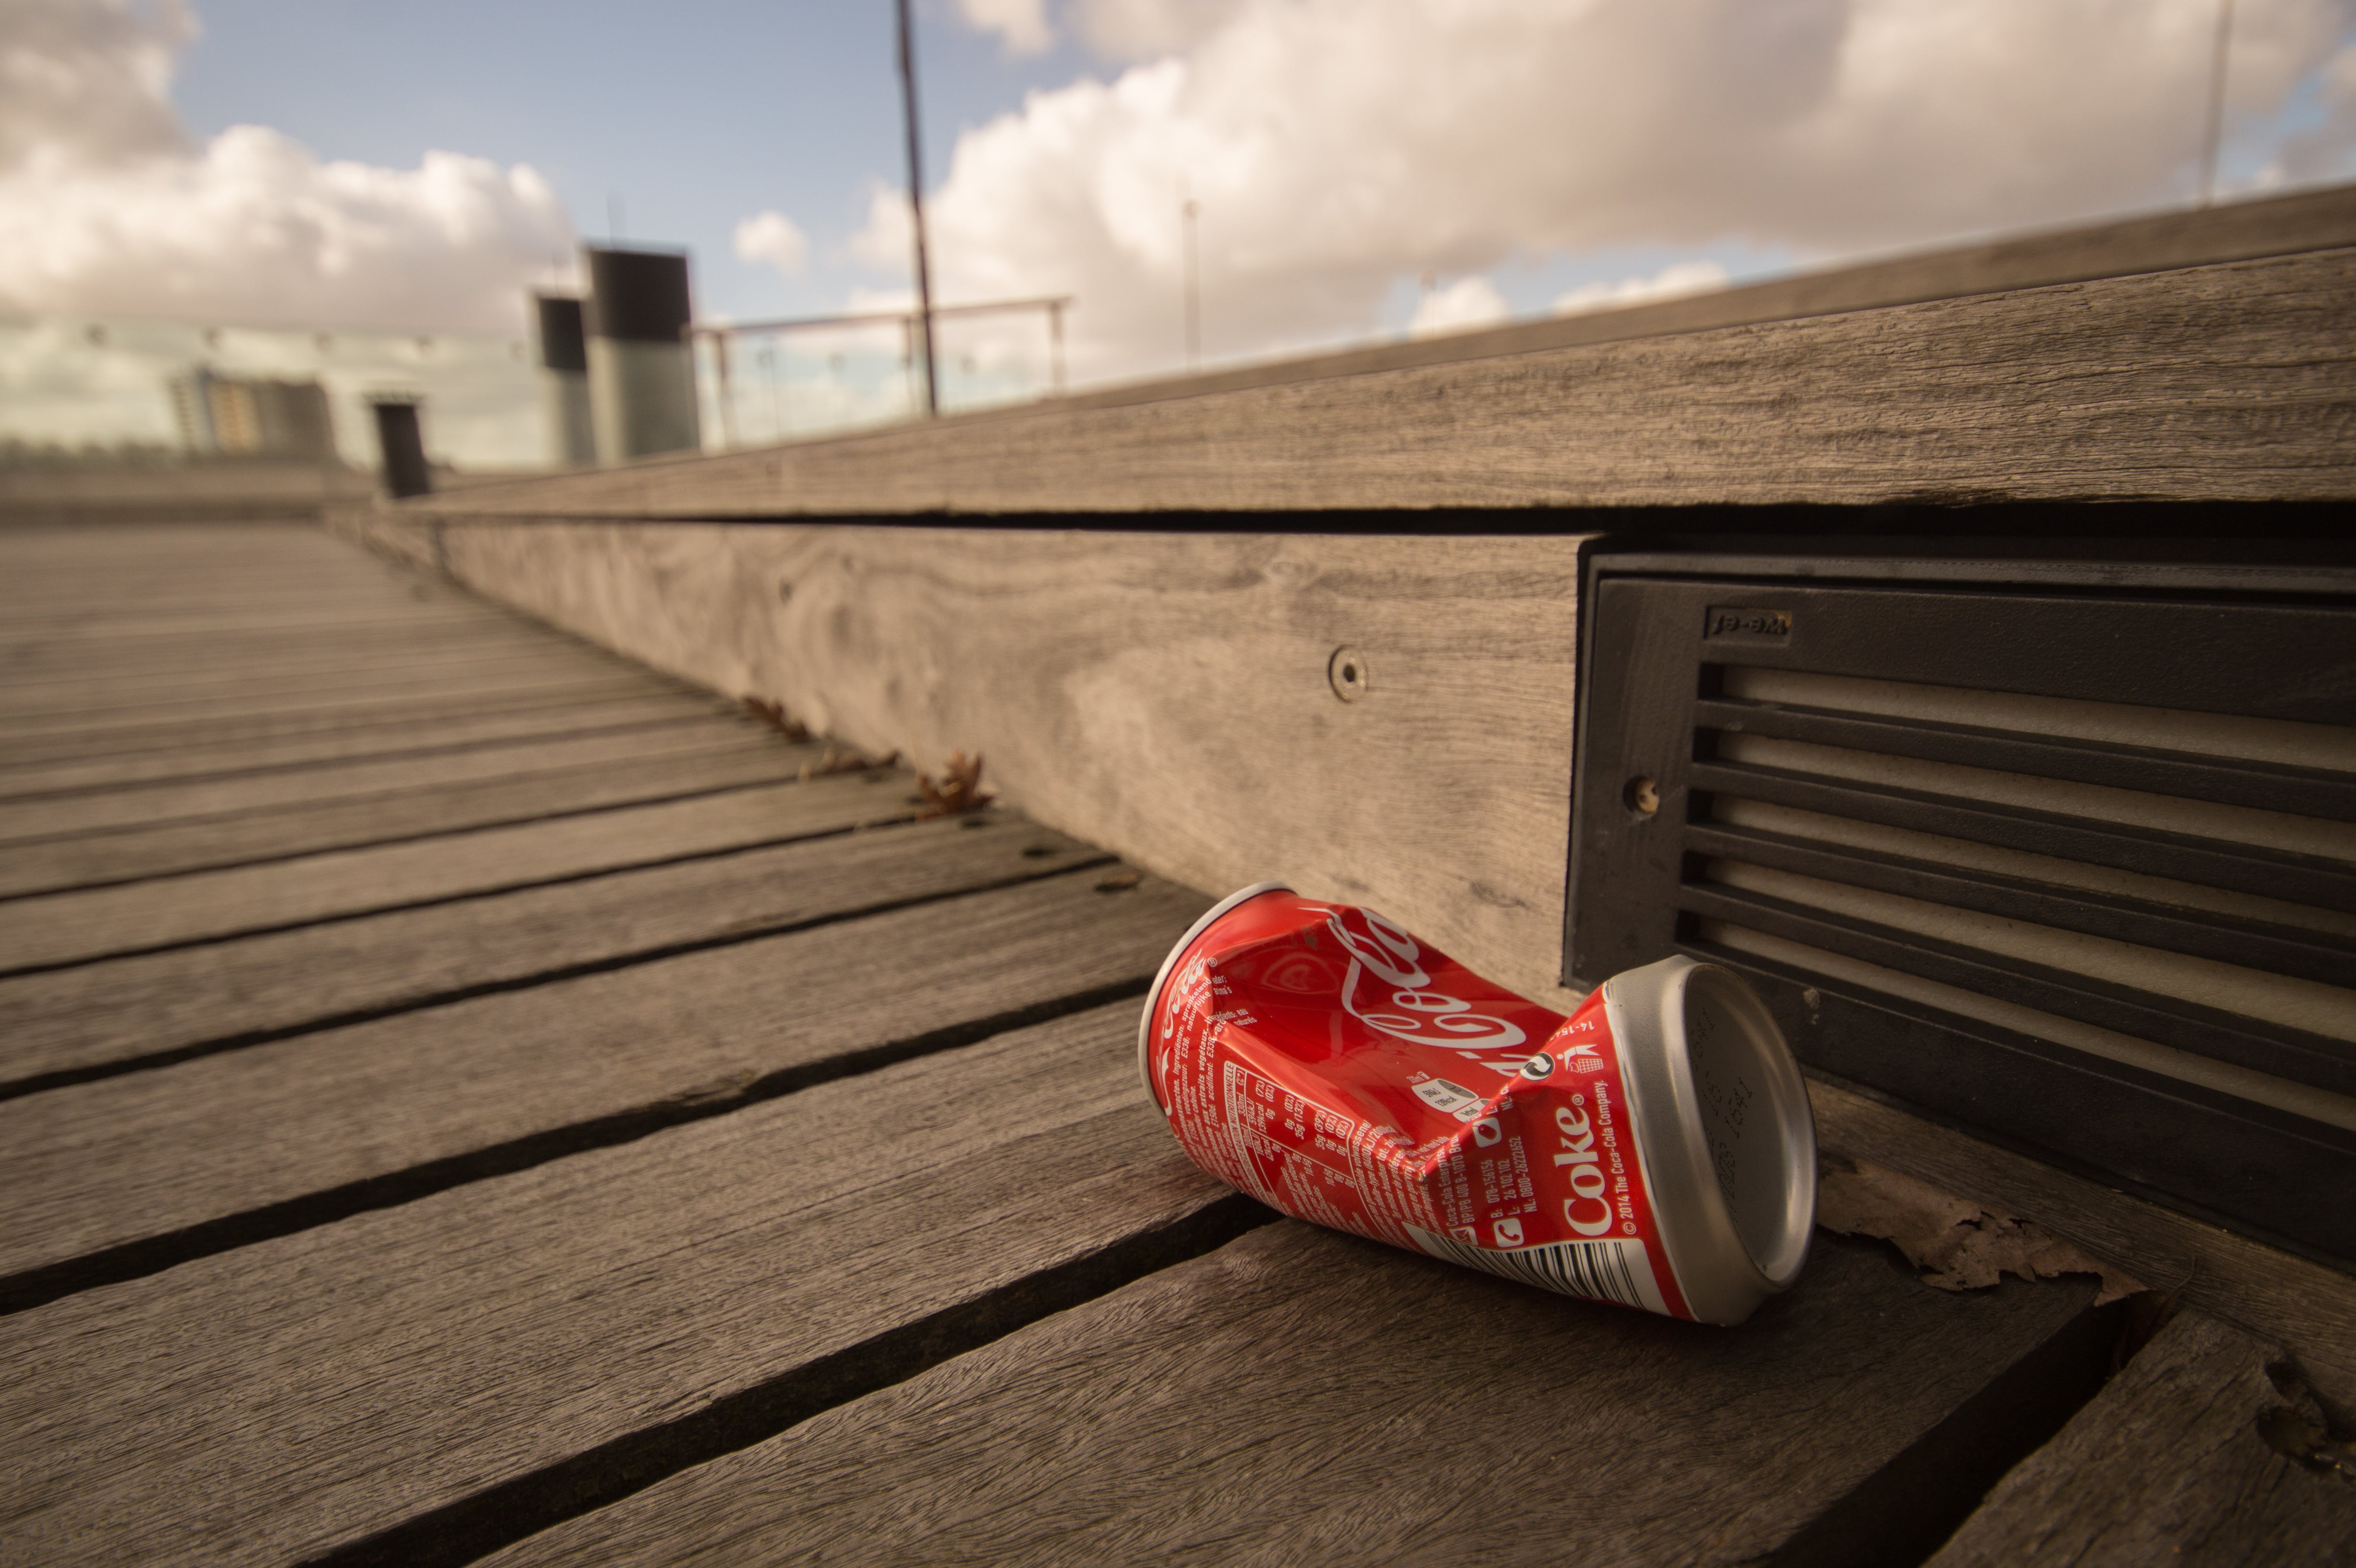 can, coca cola, litter